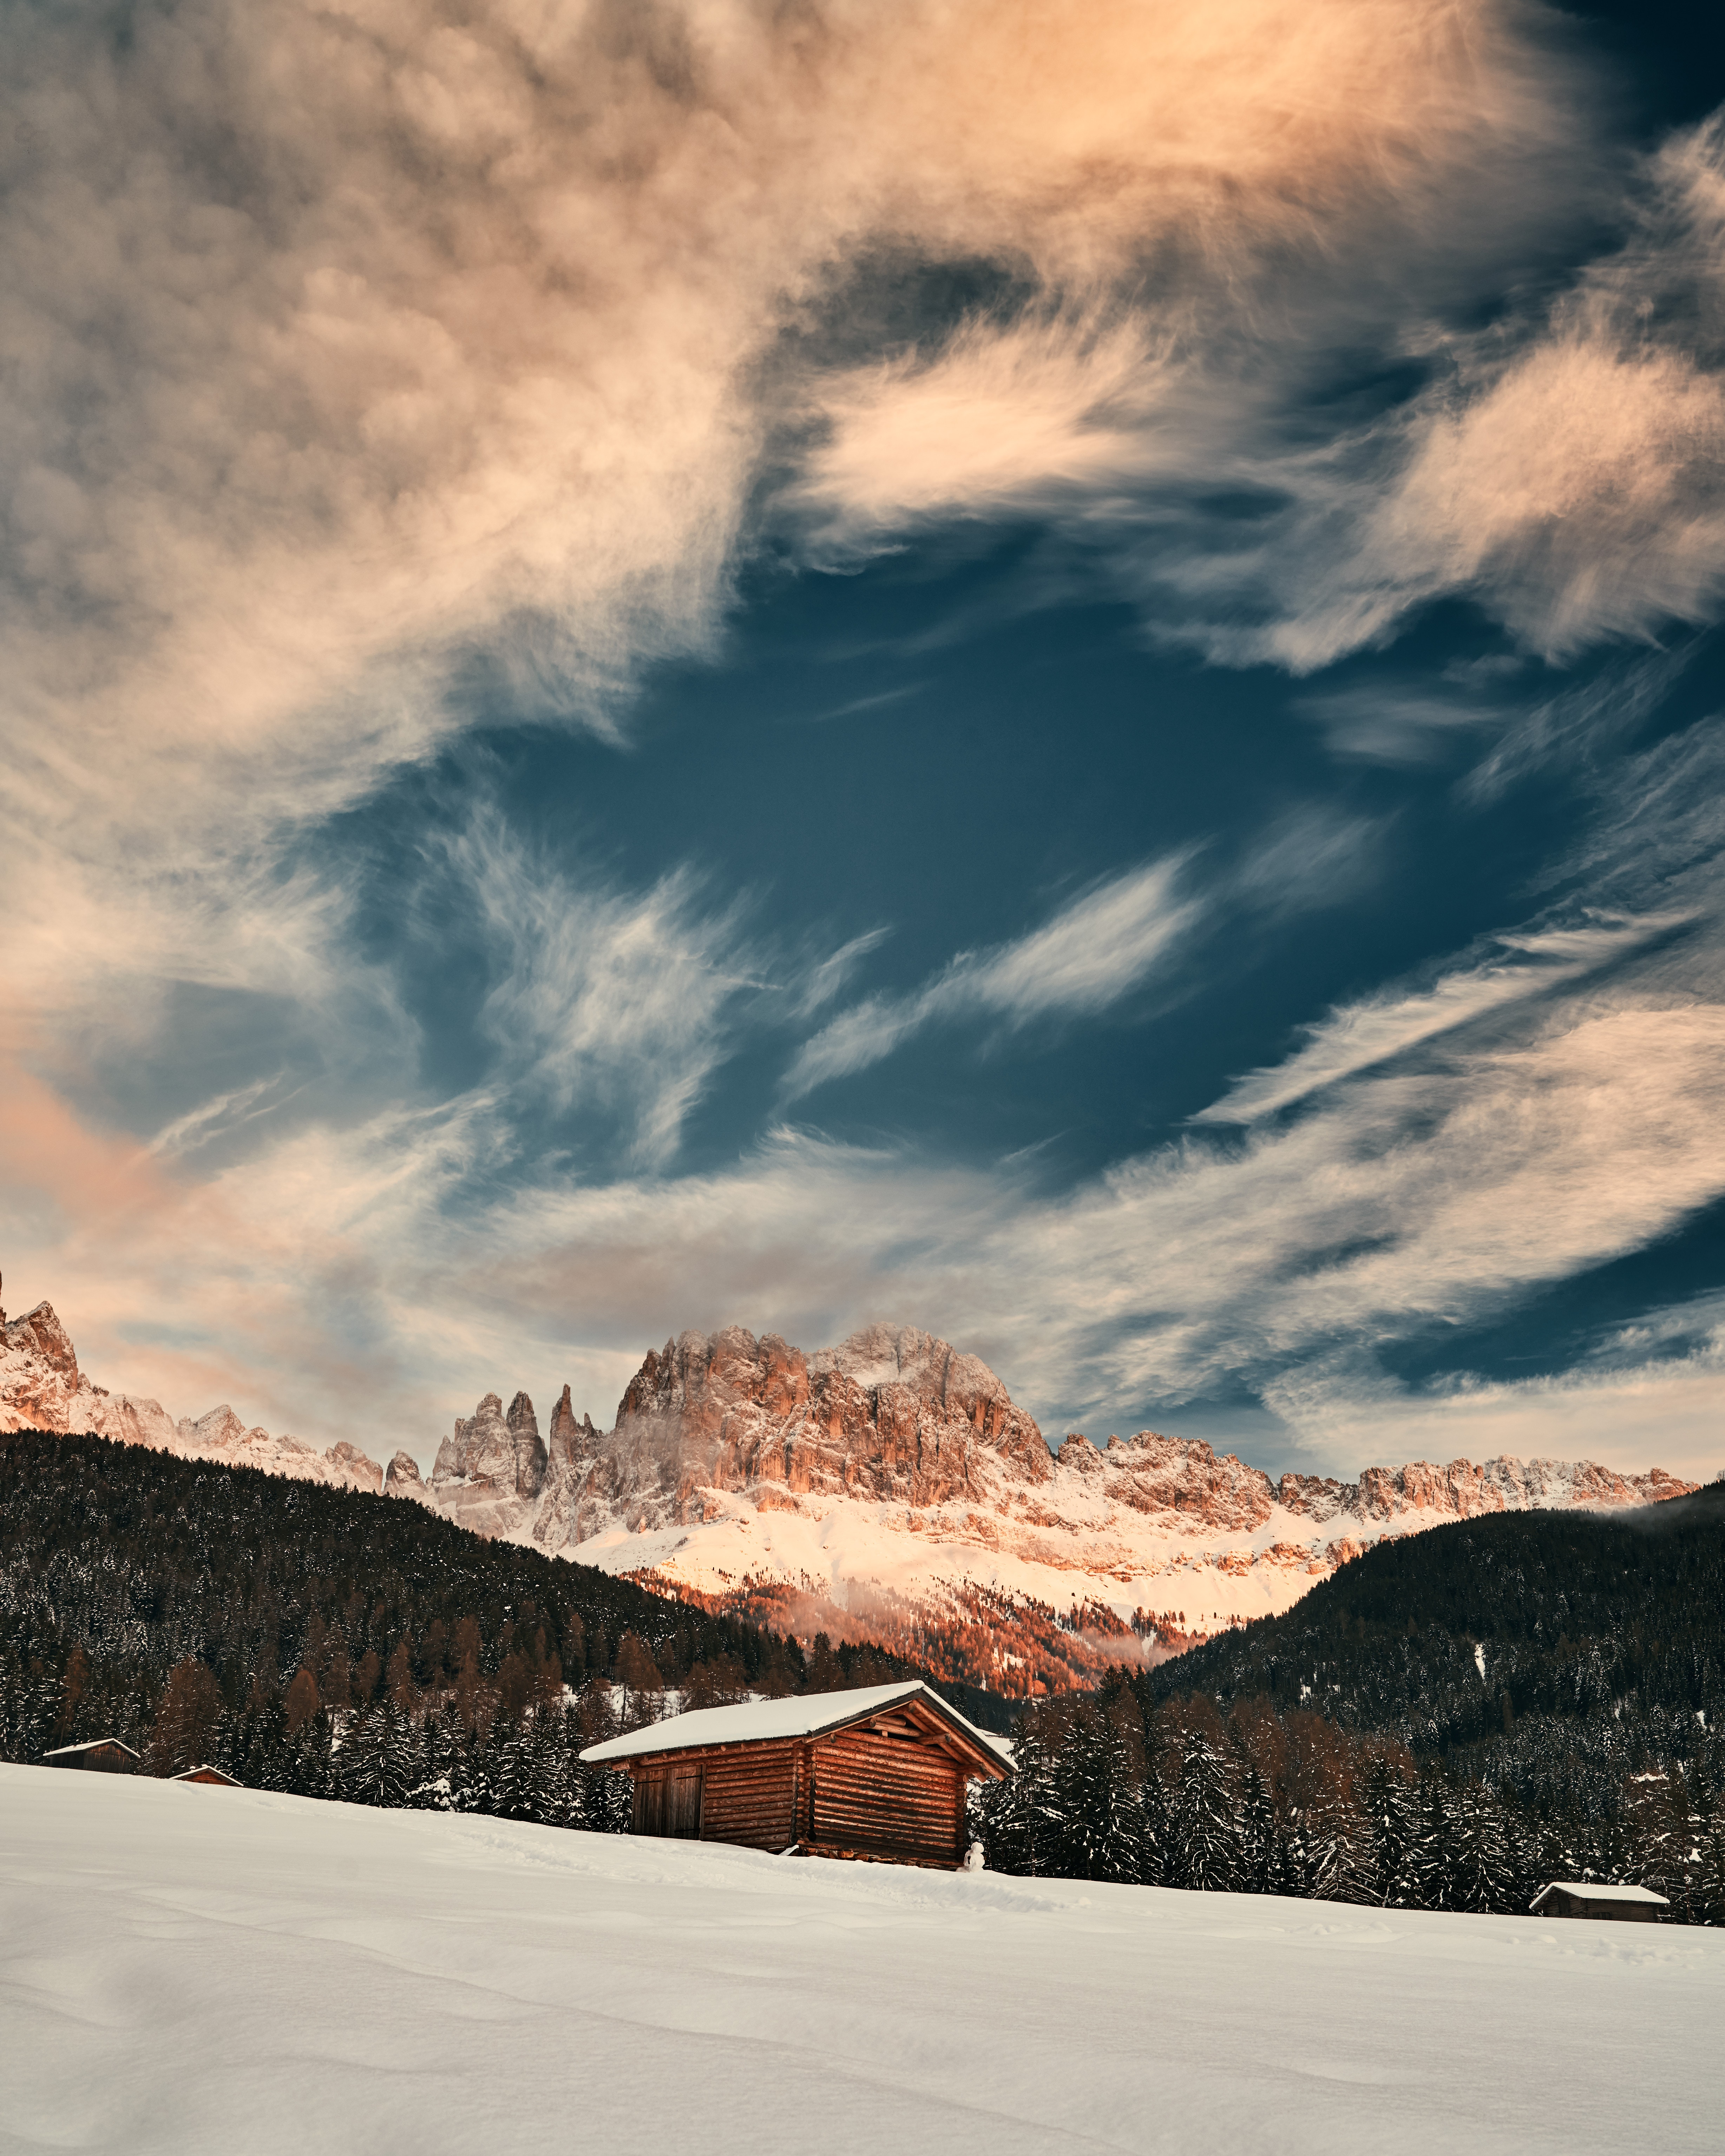 130351 download wallpaper Nature, Snow, Winter, Vertex, Top, Structure, Mountains screensavers and pictures for free